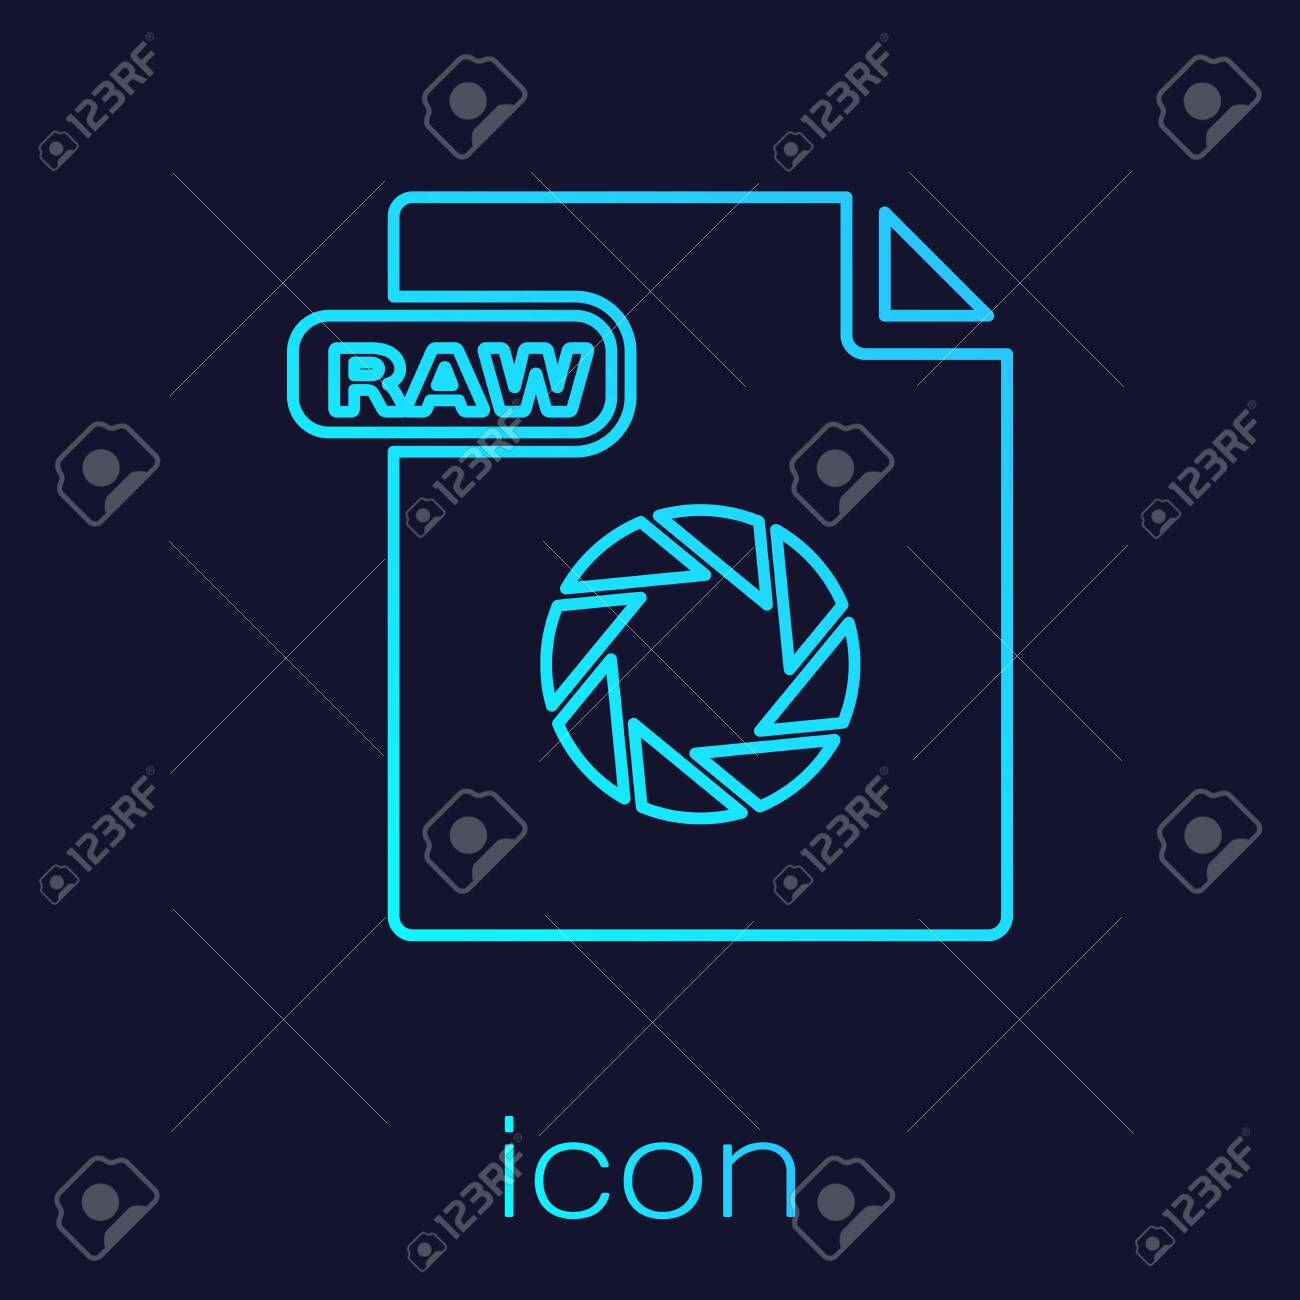 Turquoise line RAW file document  Download raw button icon isolated